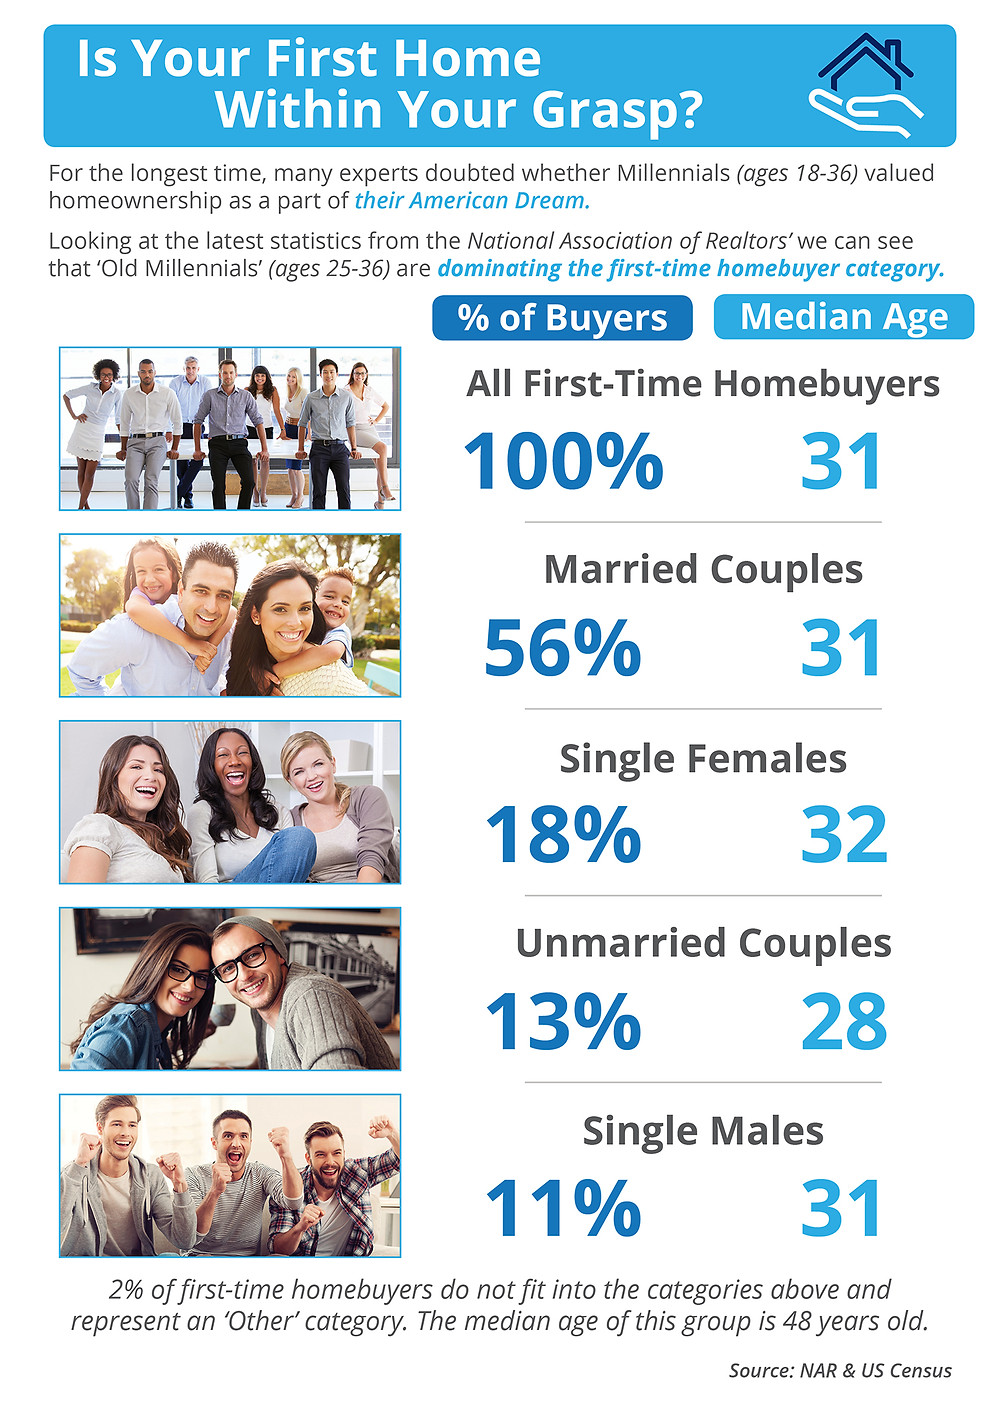 Is Your First Home Within Your Grasp? [INFOGRAPHIC] | Simplifying the Market